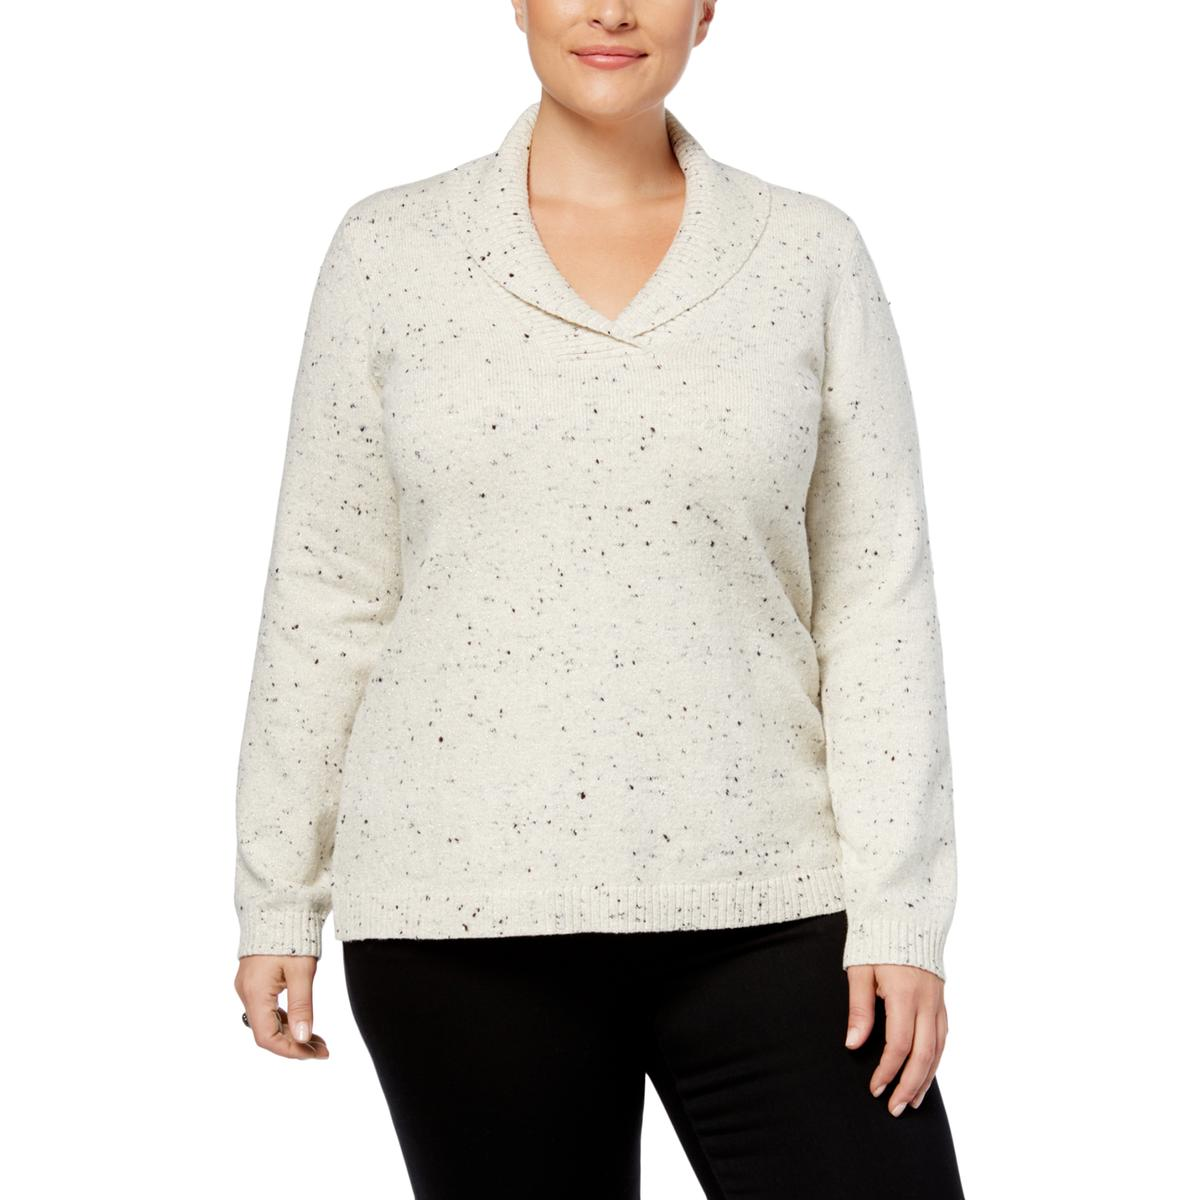 a429499c0fe38f Details about Charter Club Womens Metallic Cowl Neck Pullover Sweater Top  Plus BHFO 6000